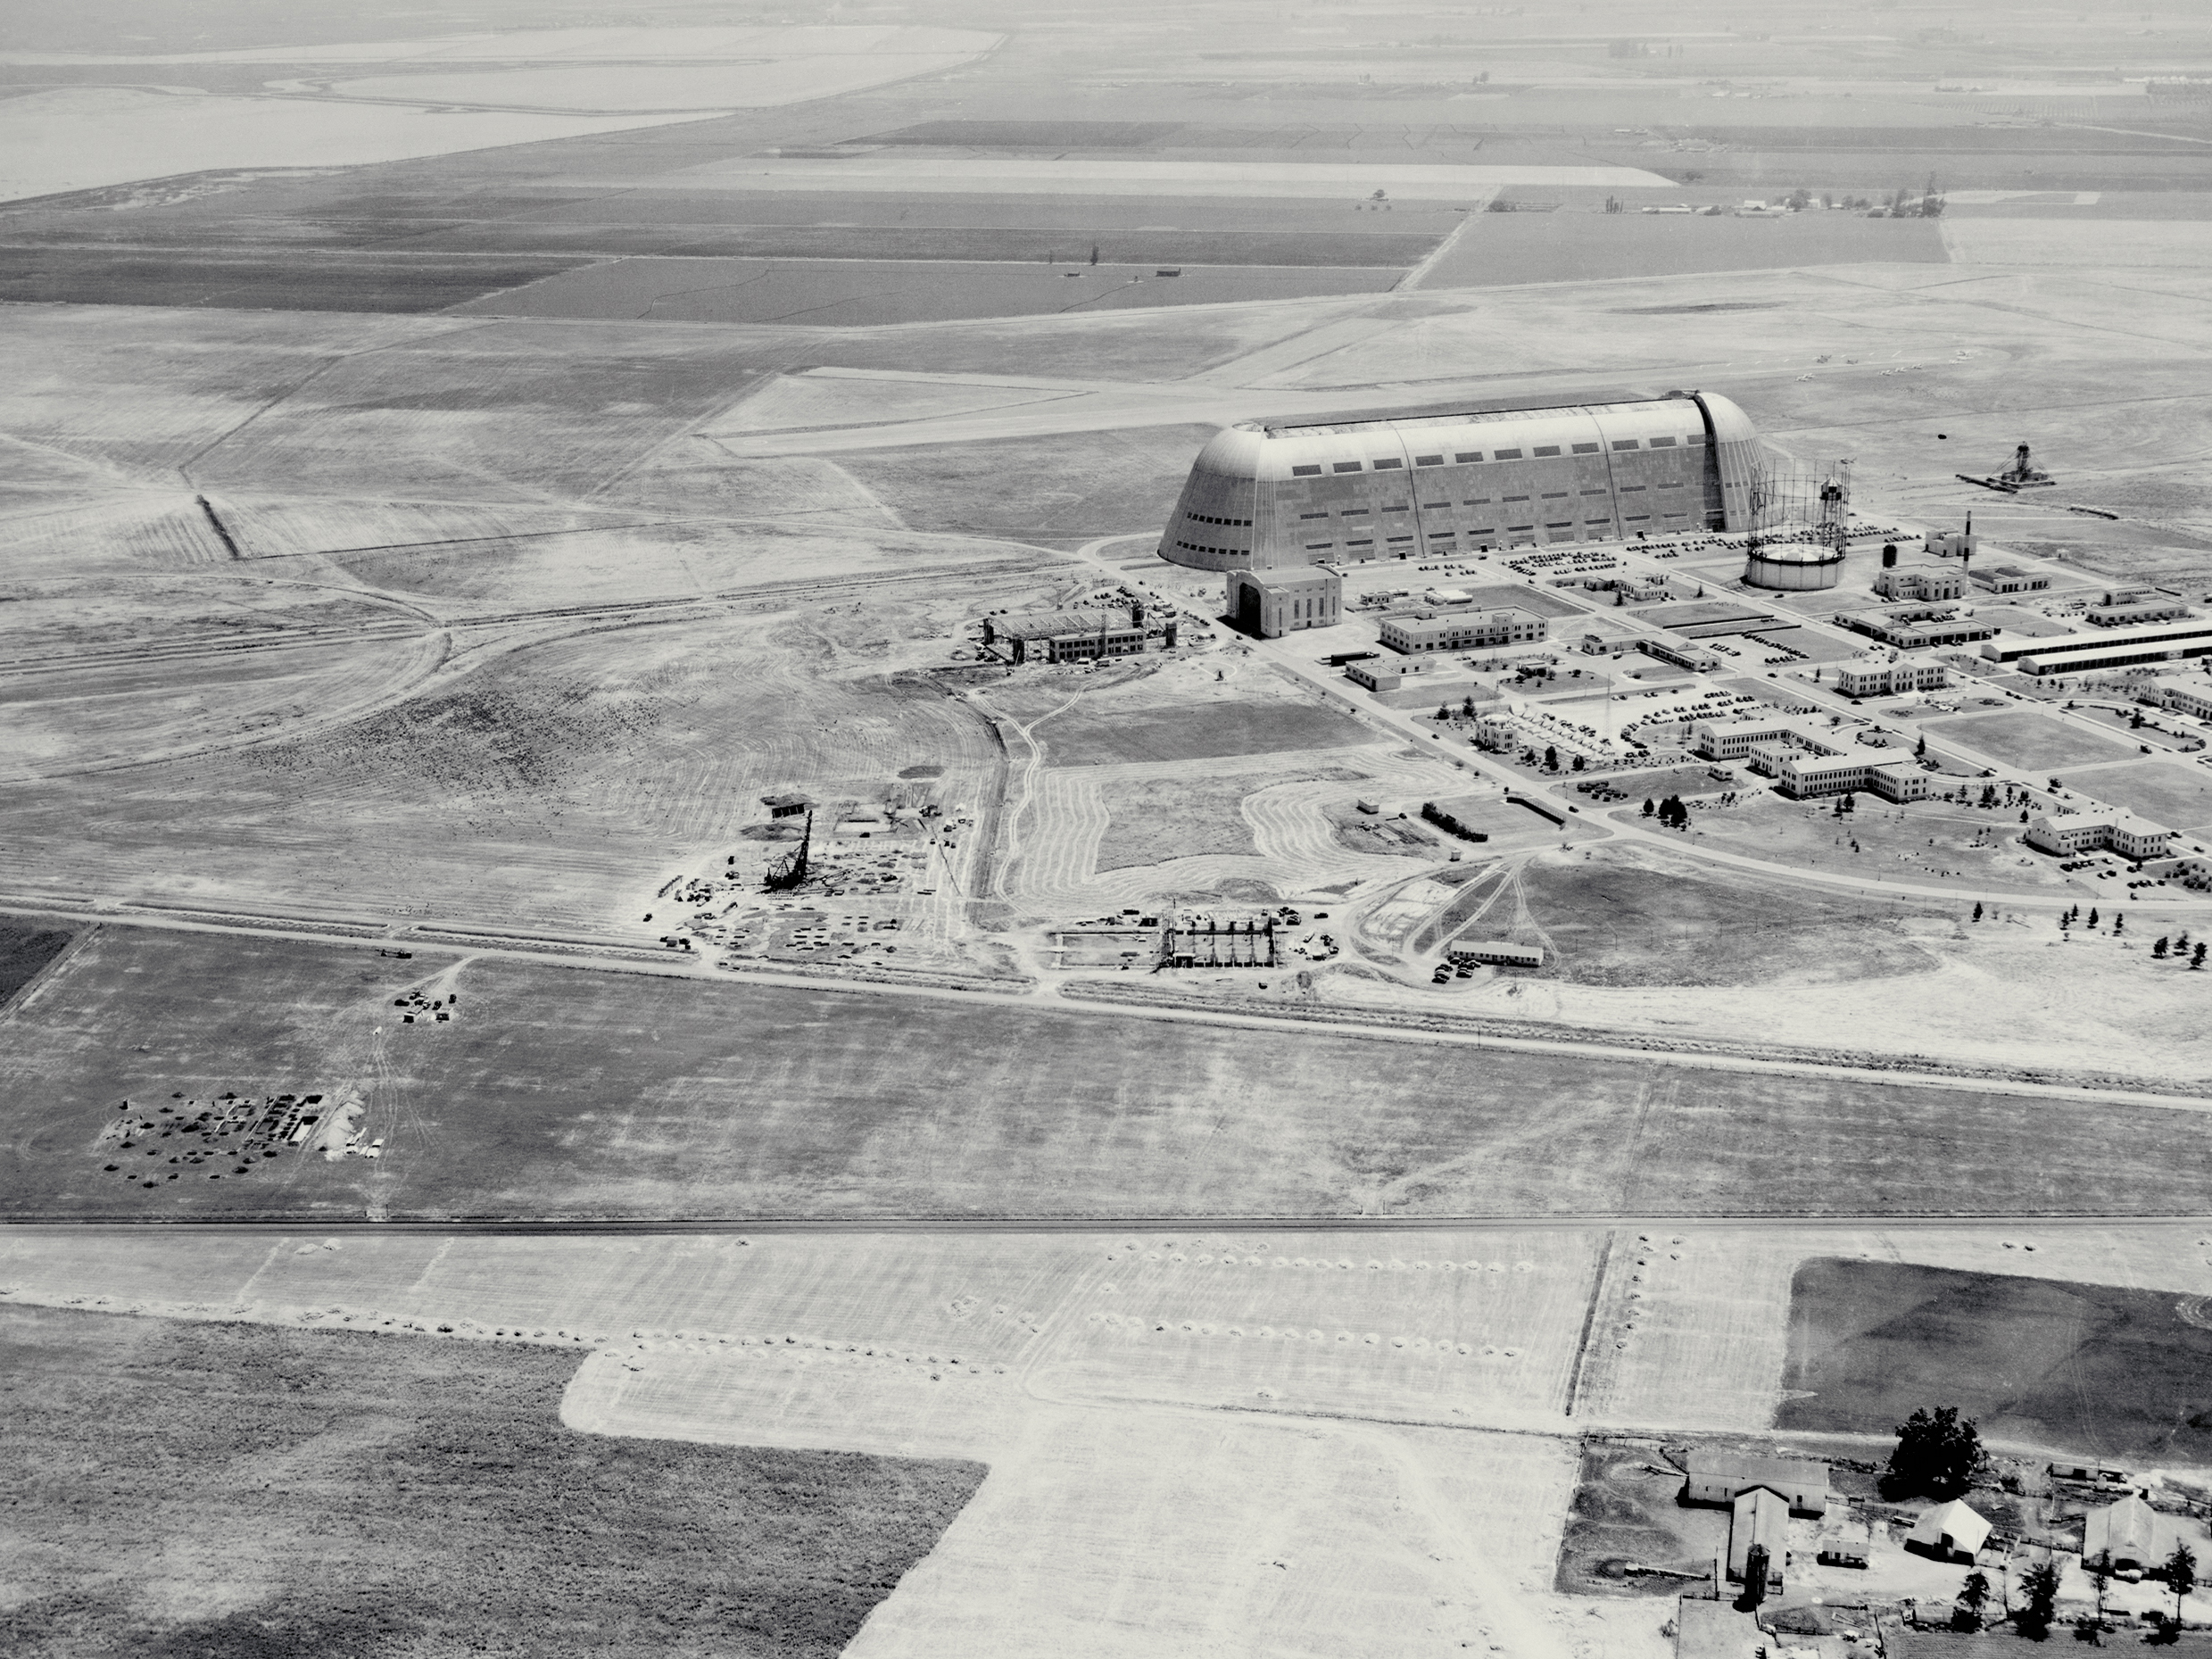 Photo taken in 1940 showing the construction progress of Ames Research Center